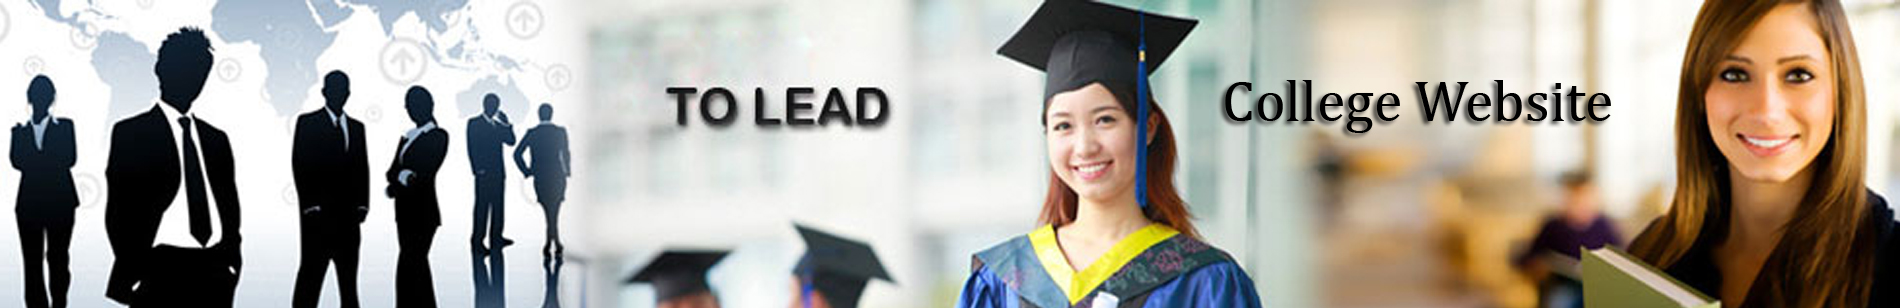 college website banner